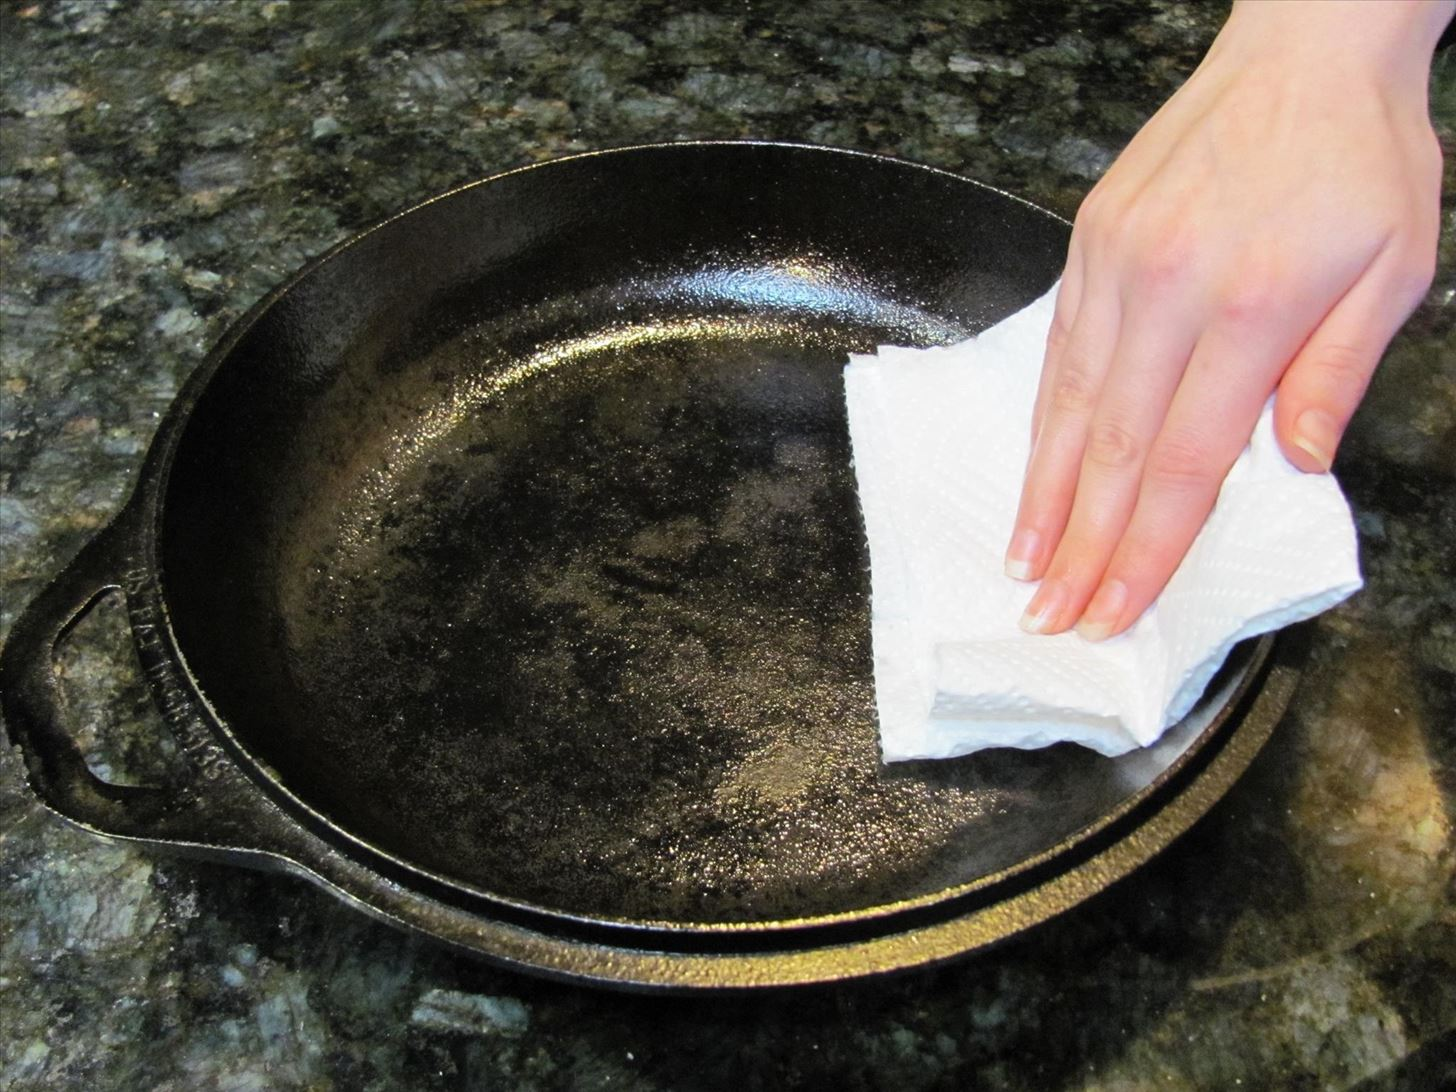 10 Key Things Everyone Should Know About Seasoning, Cleaning, & Maintaining Cast Iron Pans